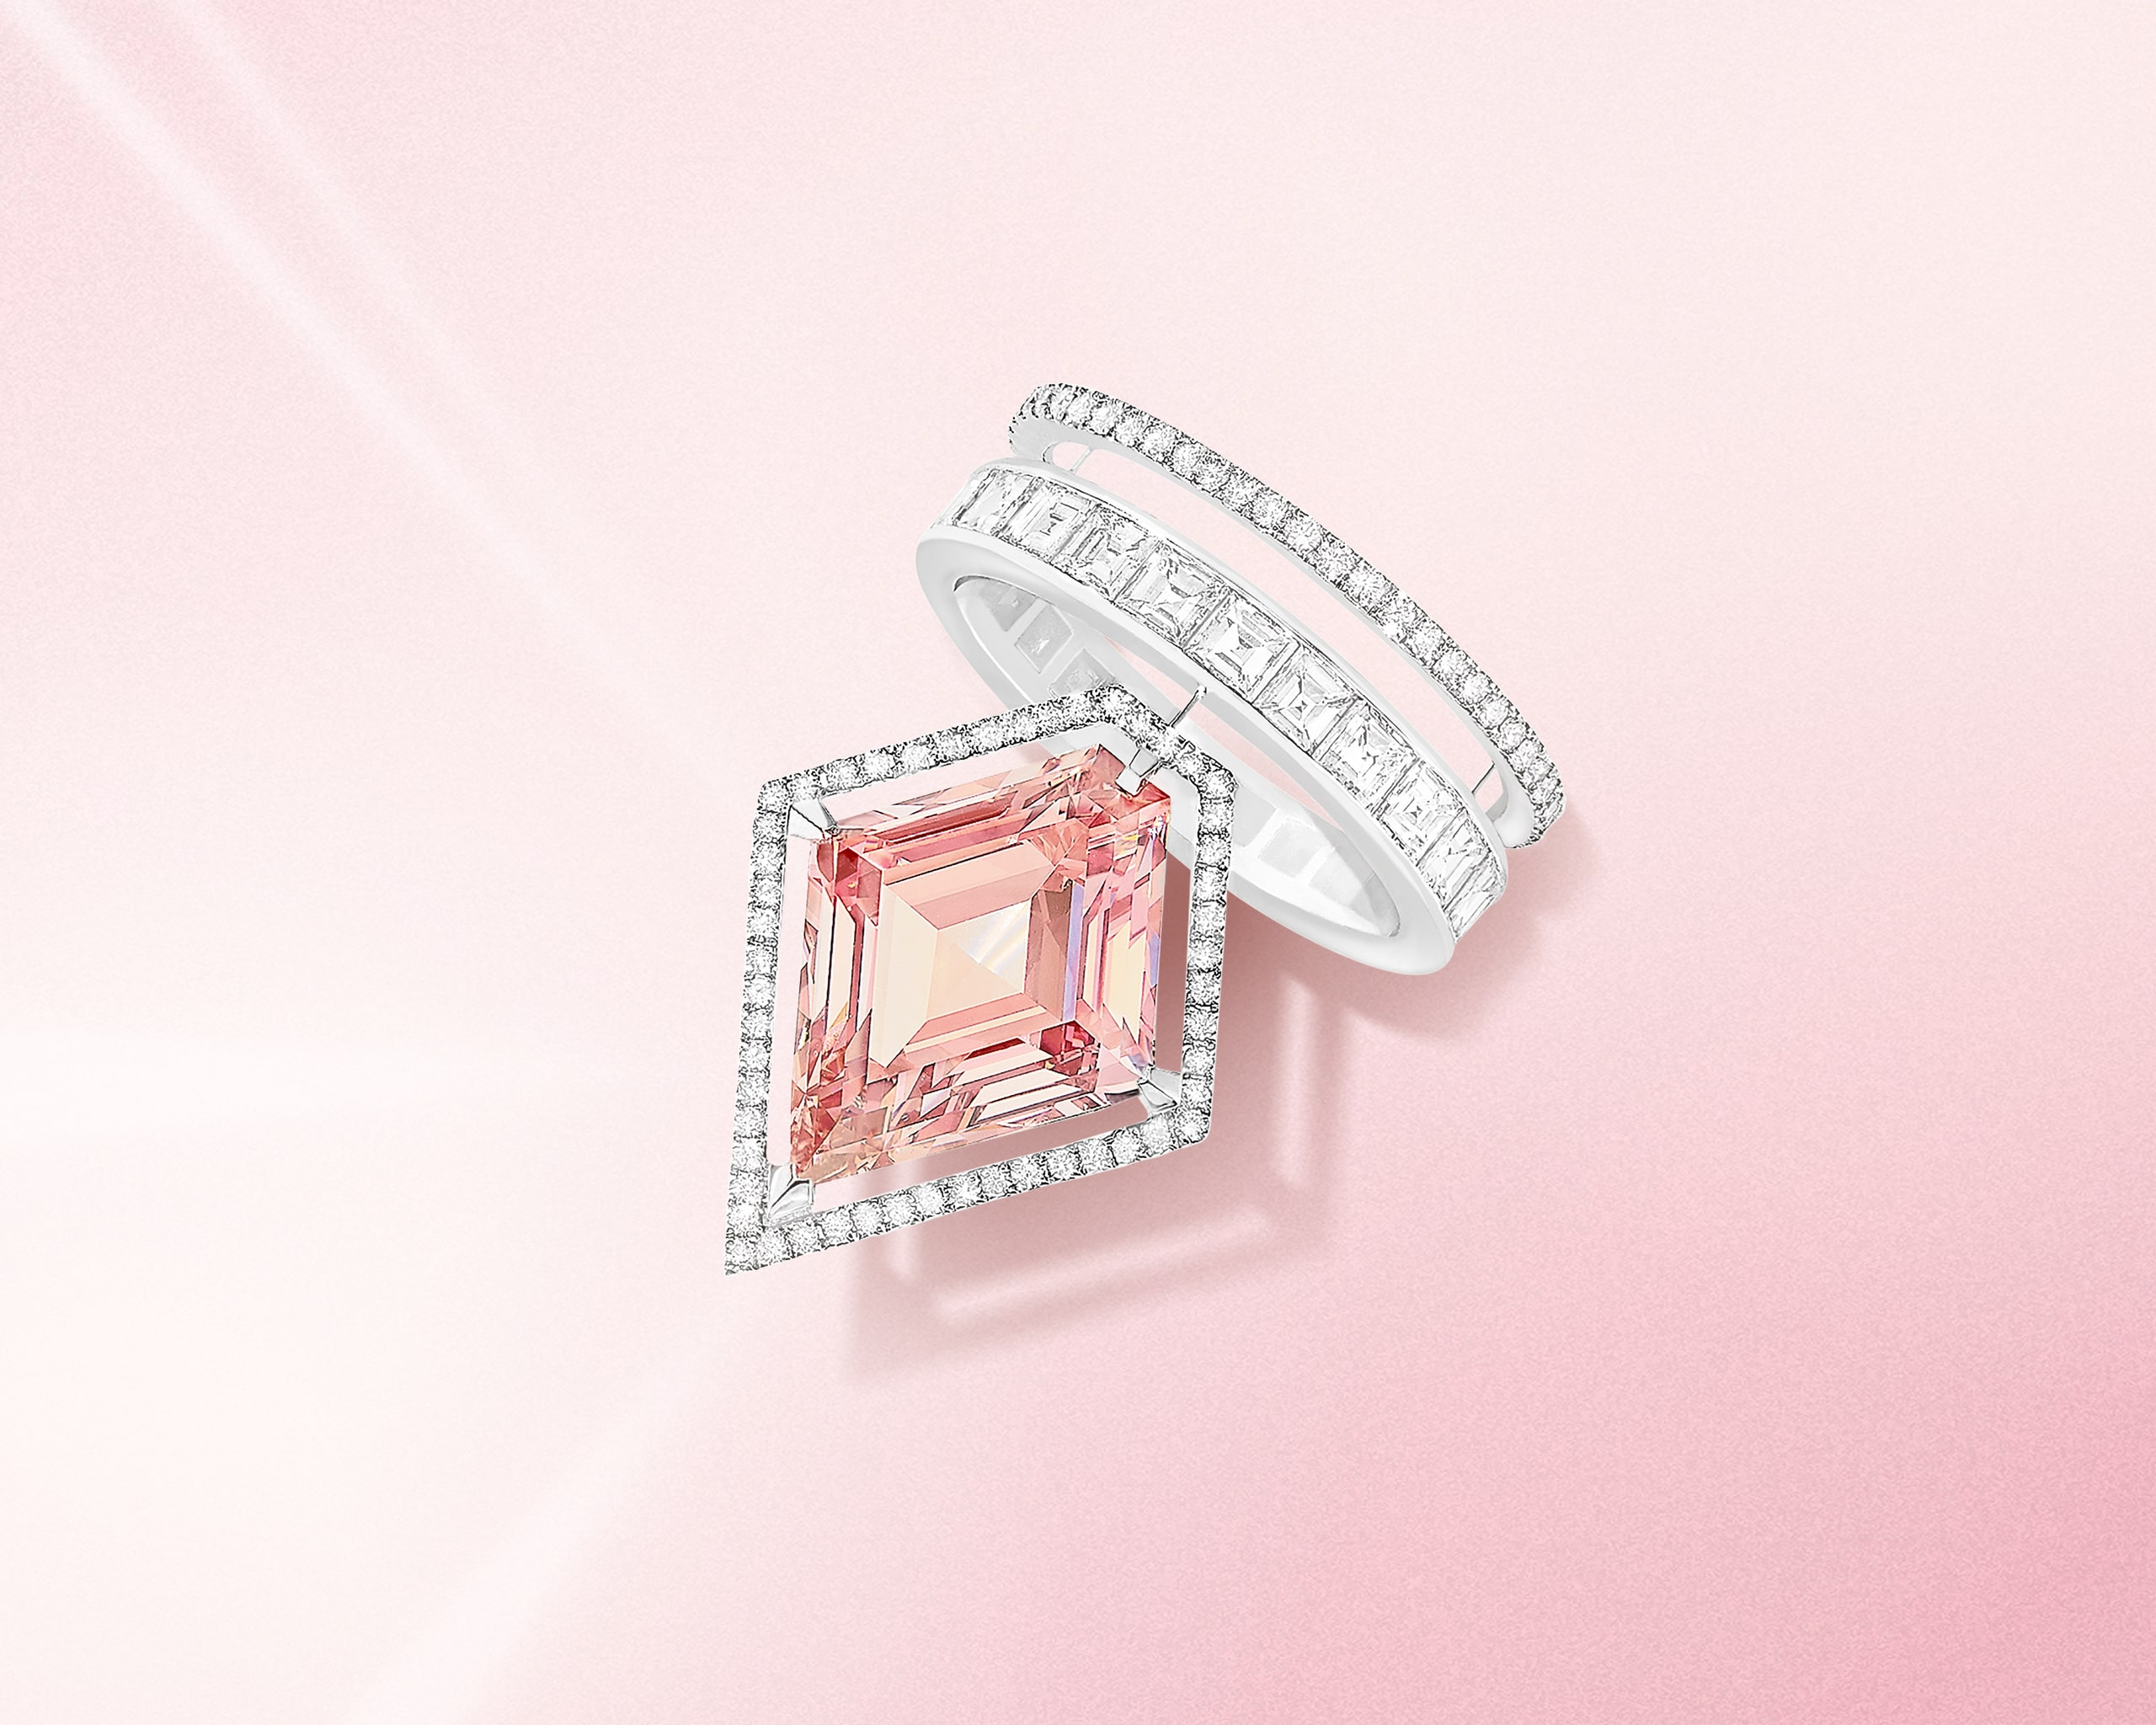 Kite cut pink diamond ring with the halo and 2 row pave diamond band